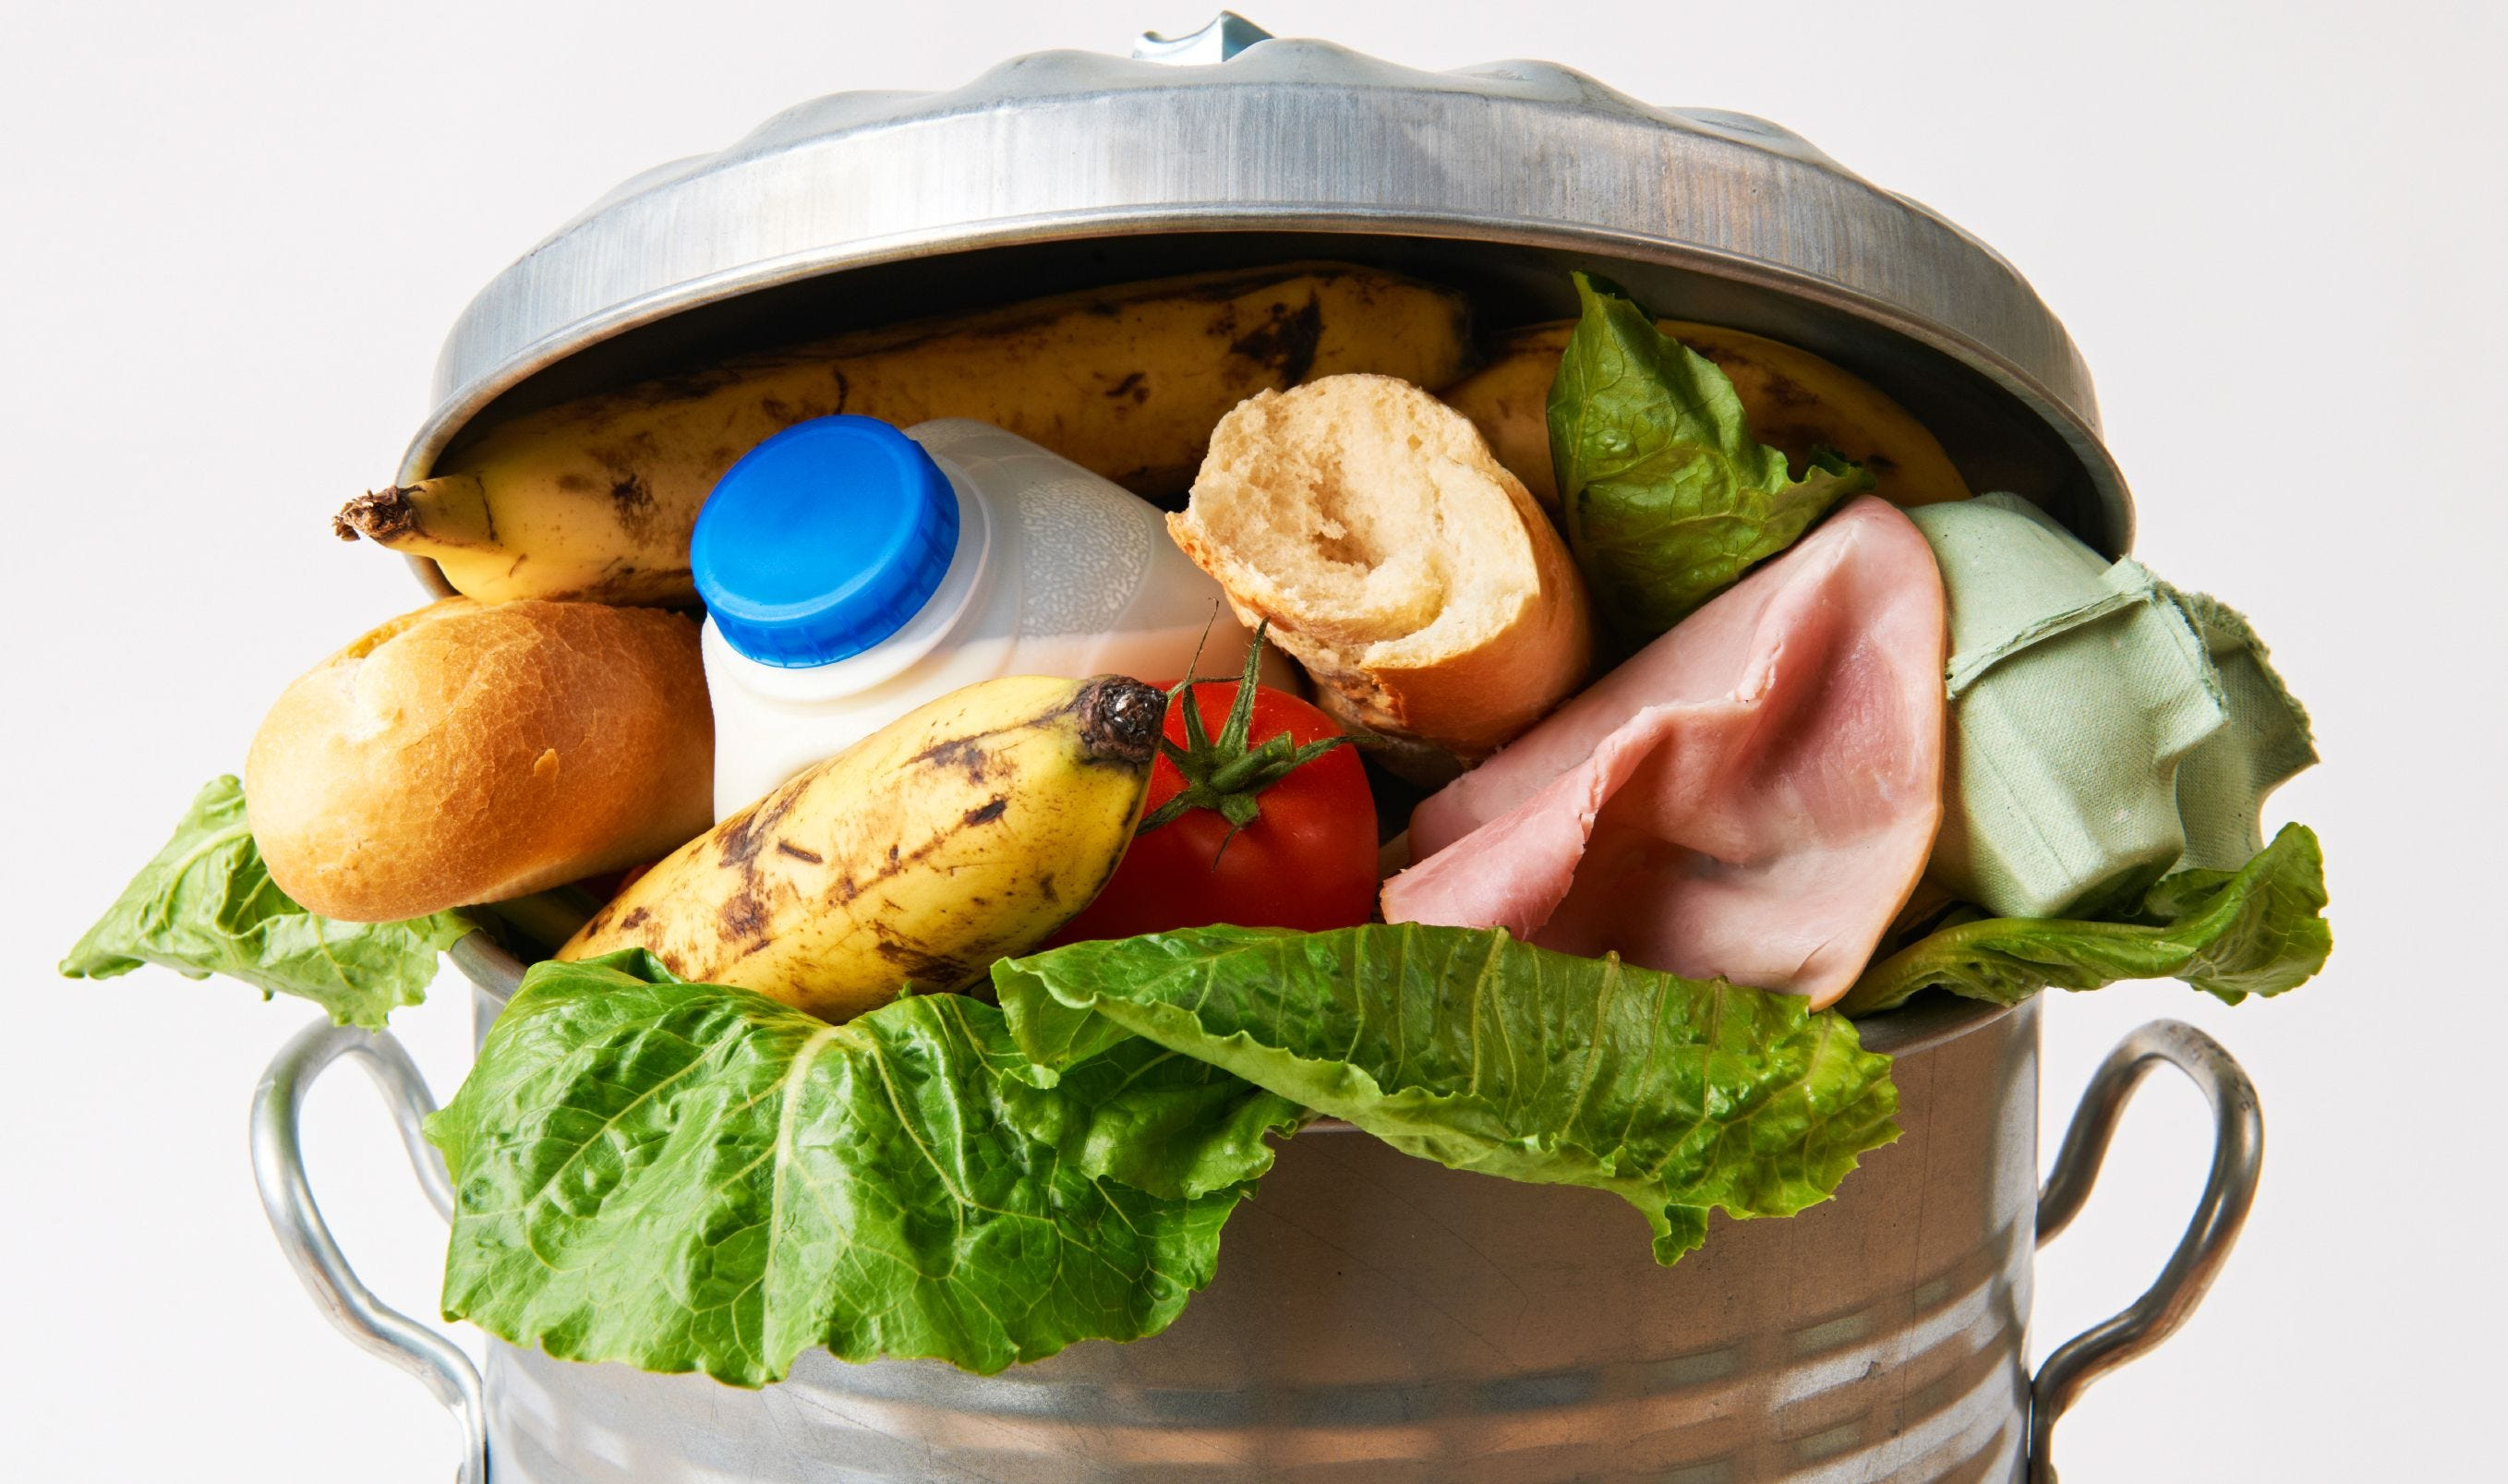 More than a third of food is wasted: Will tax breaks, new labels and 'ugly' produce help?